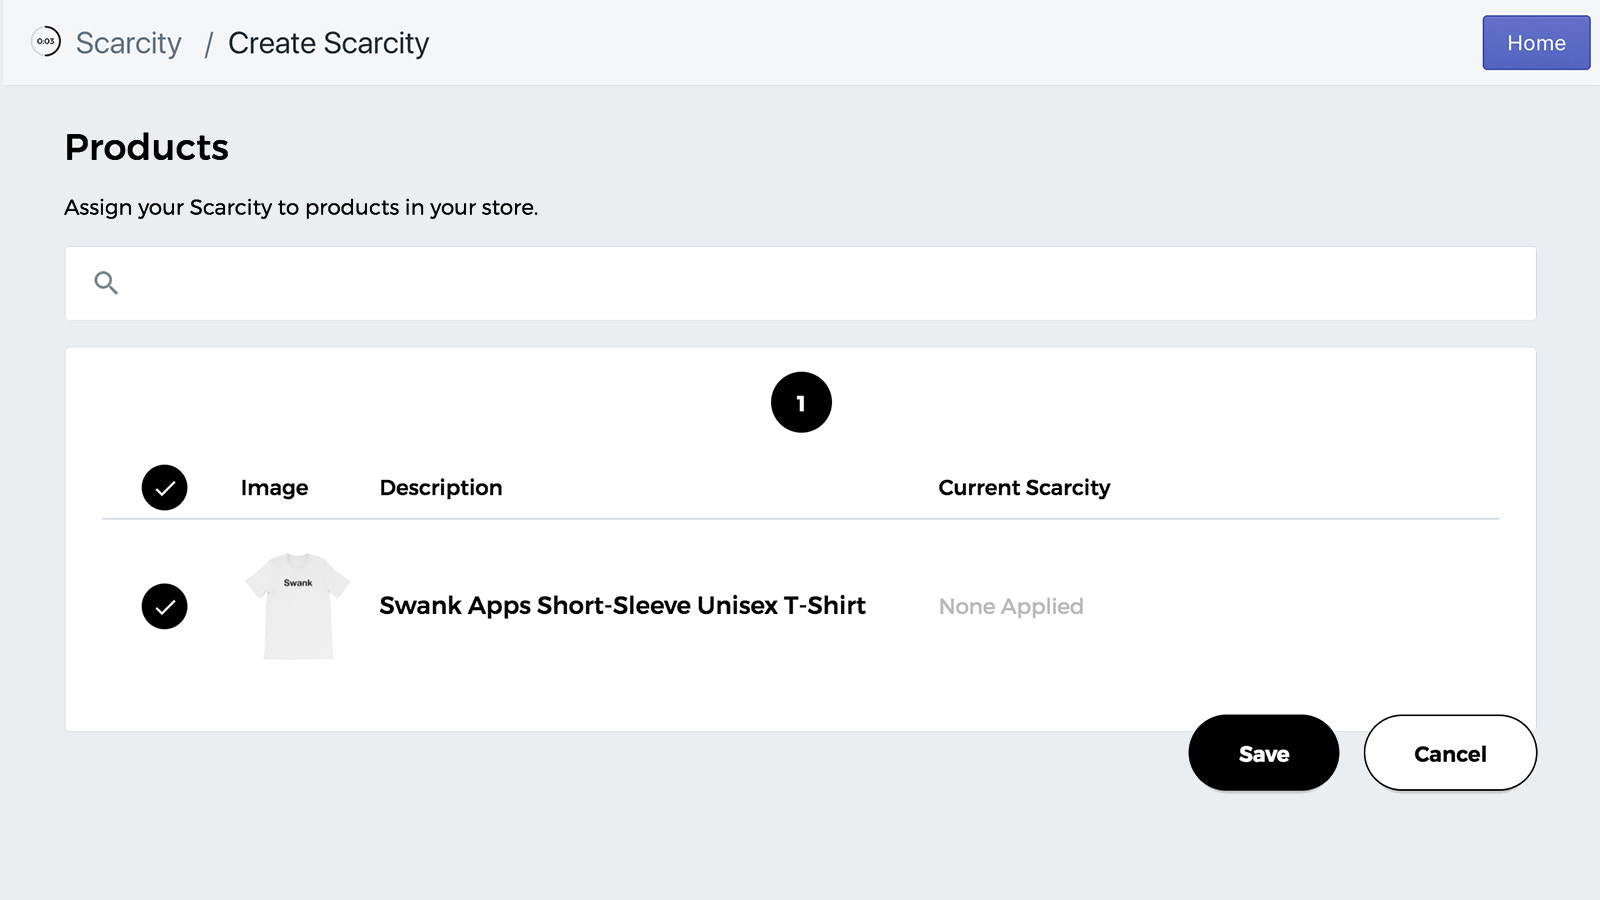 Create your first Scarcity product assignment